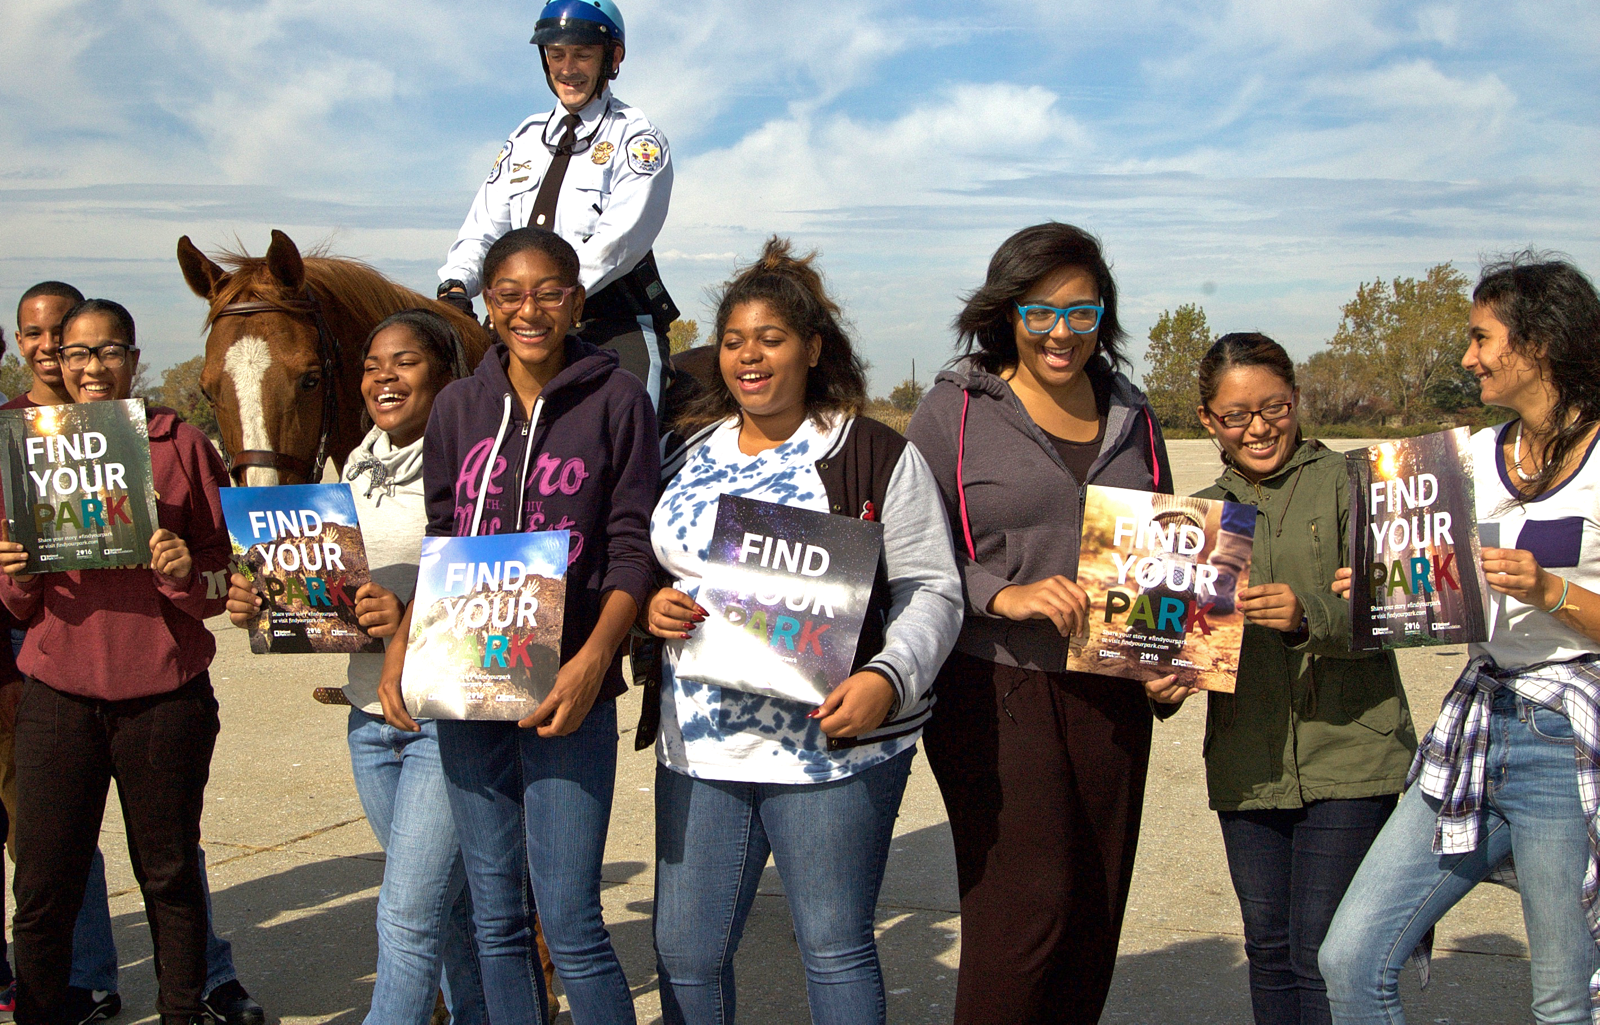 8 participants smile for the camera while holding a Find Your Park magazine